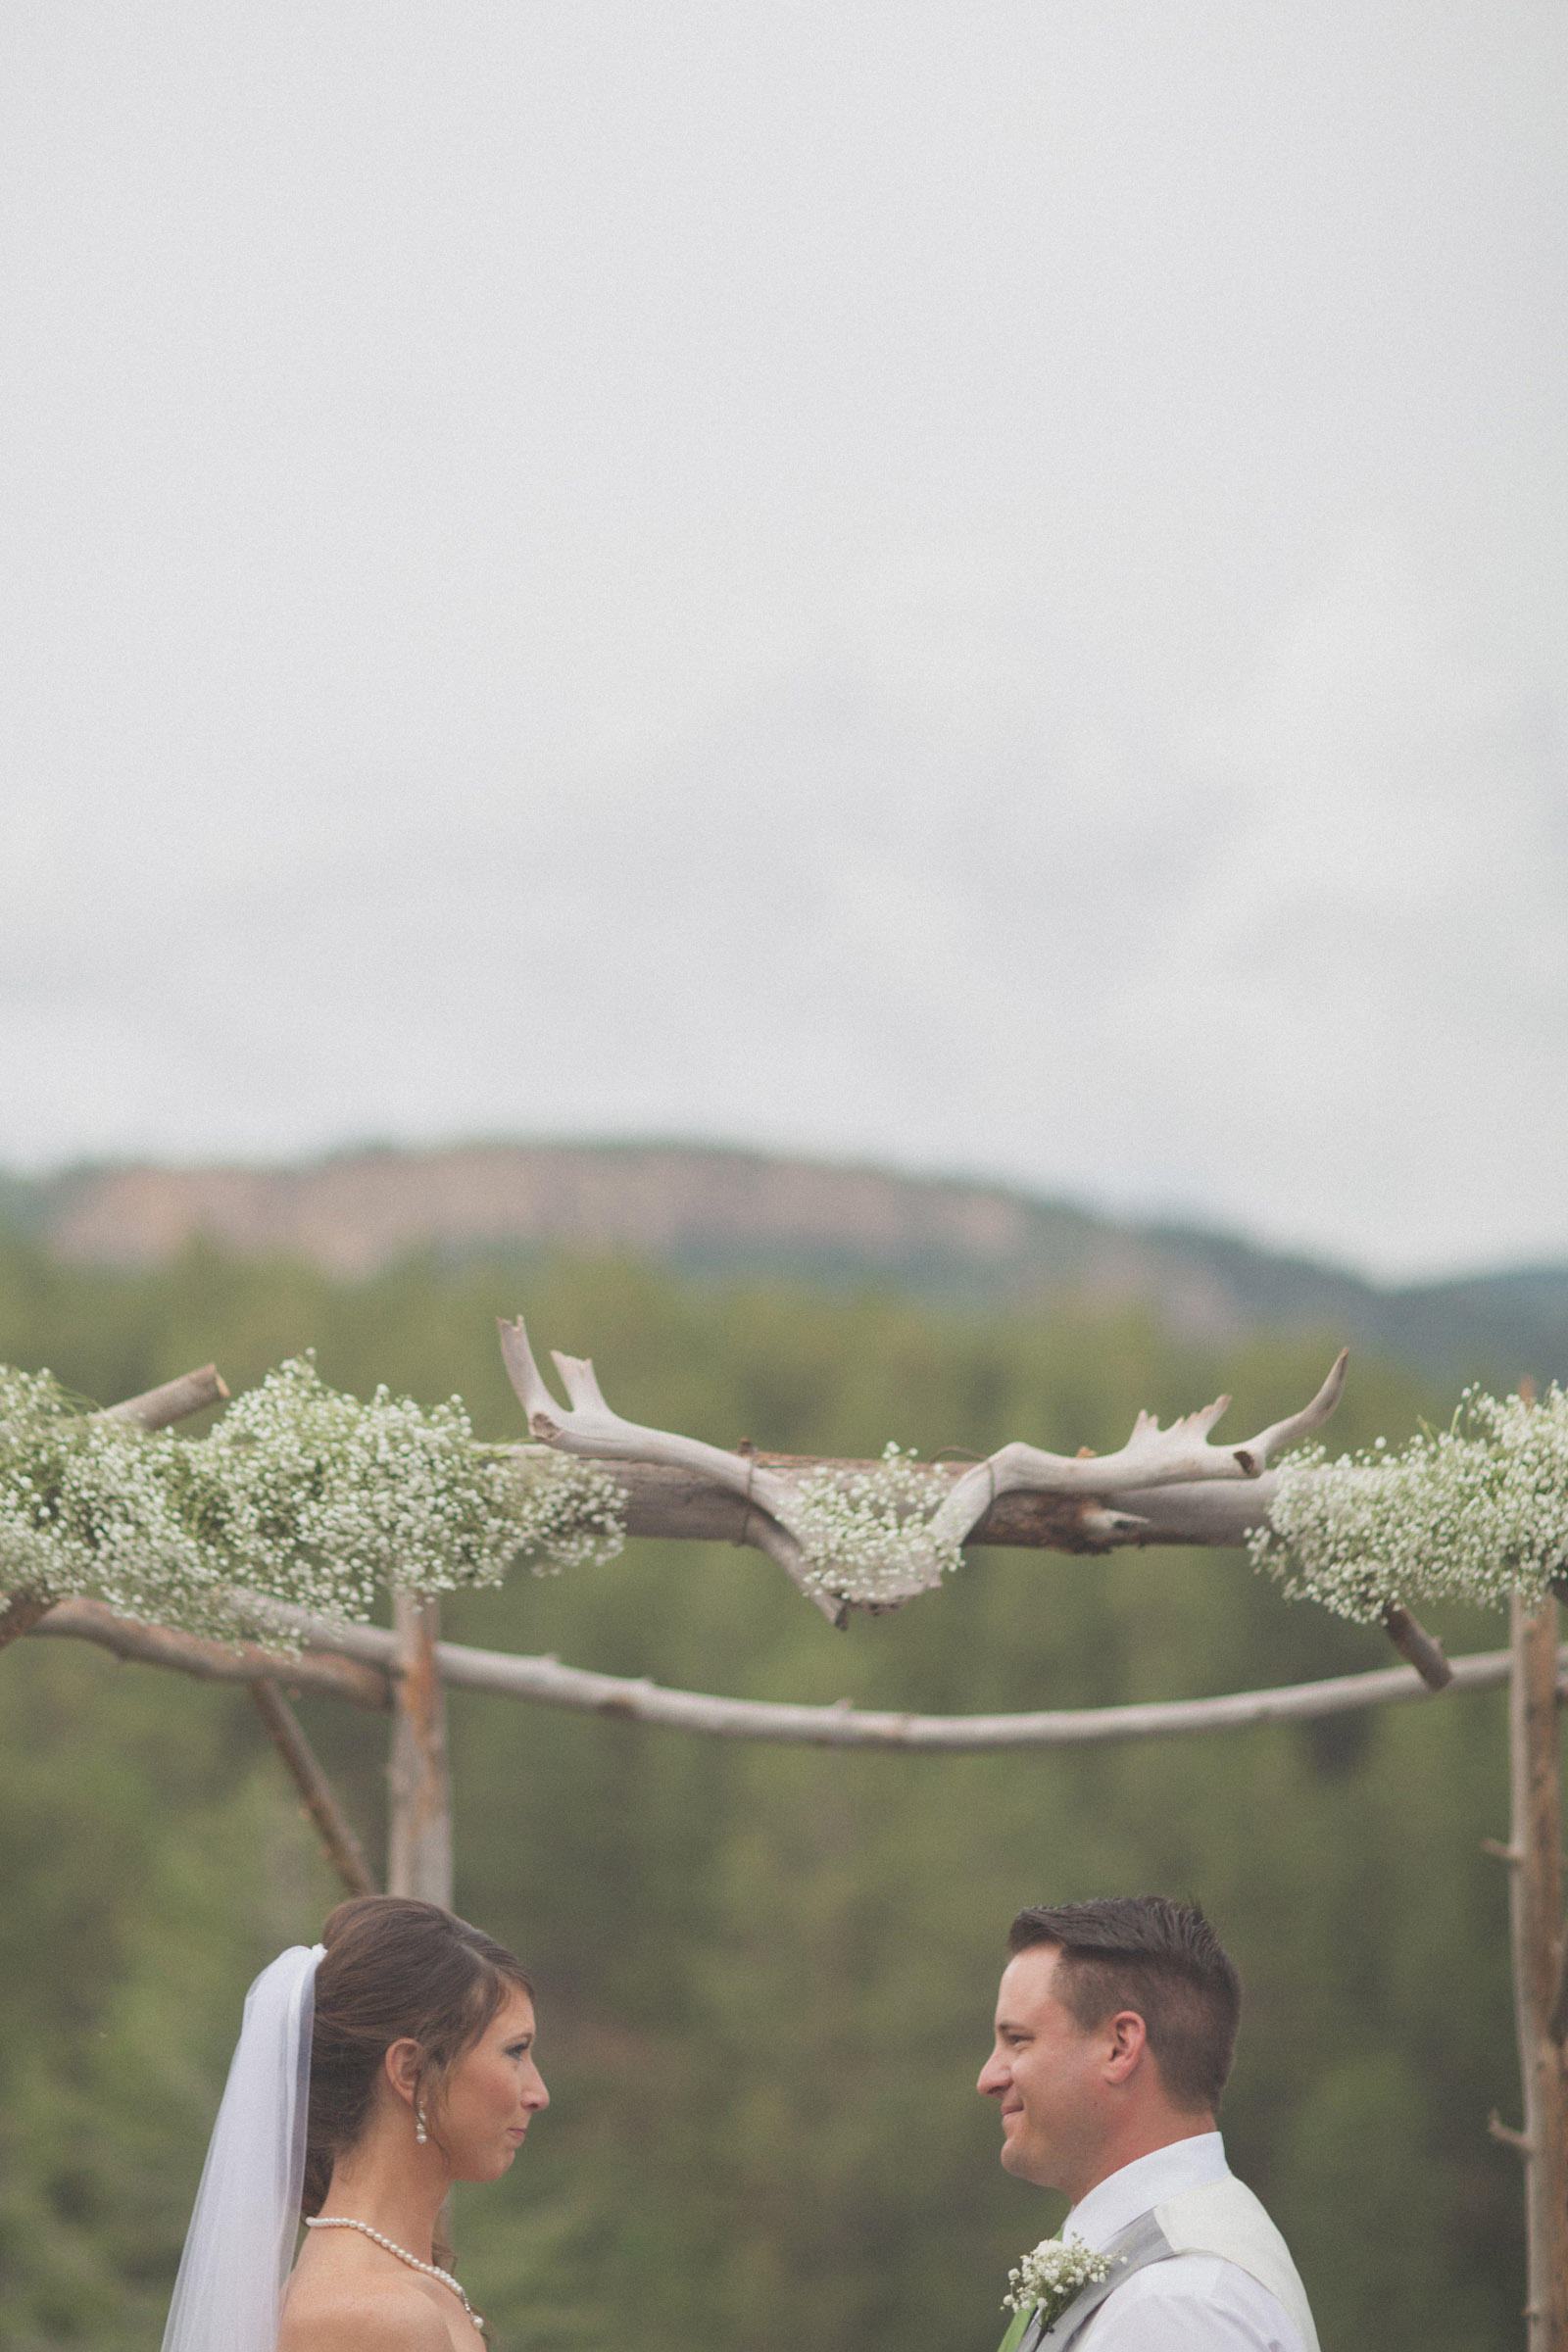 137-wedding-ideas-ideas-wedding-forest-mason-jars-backdrop-colorado-mancos-ceremony